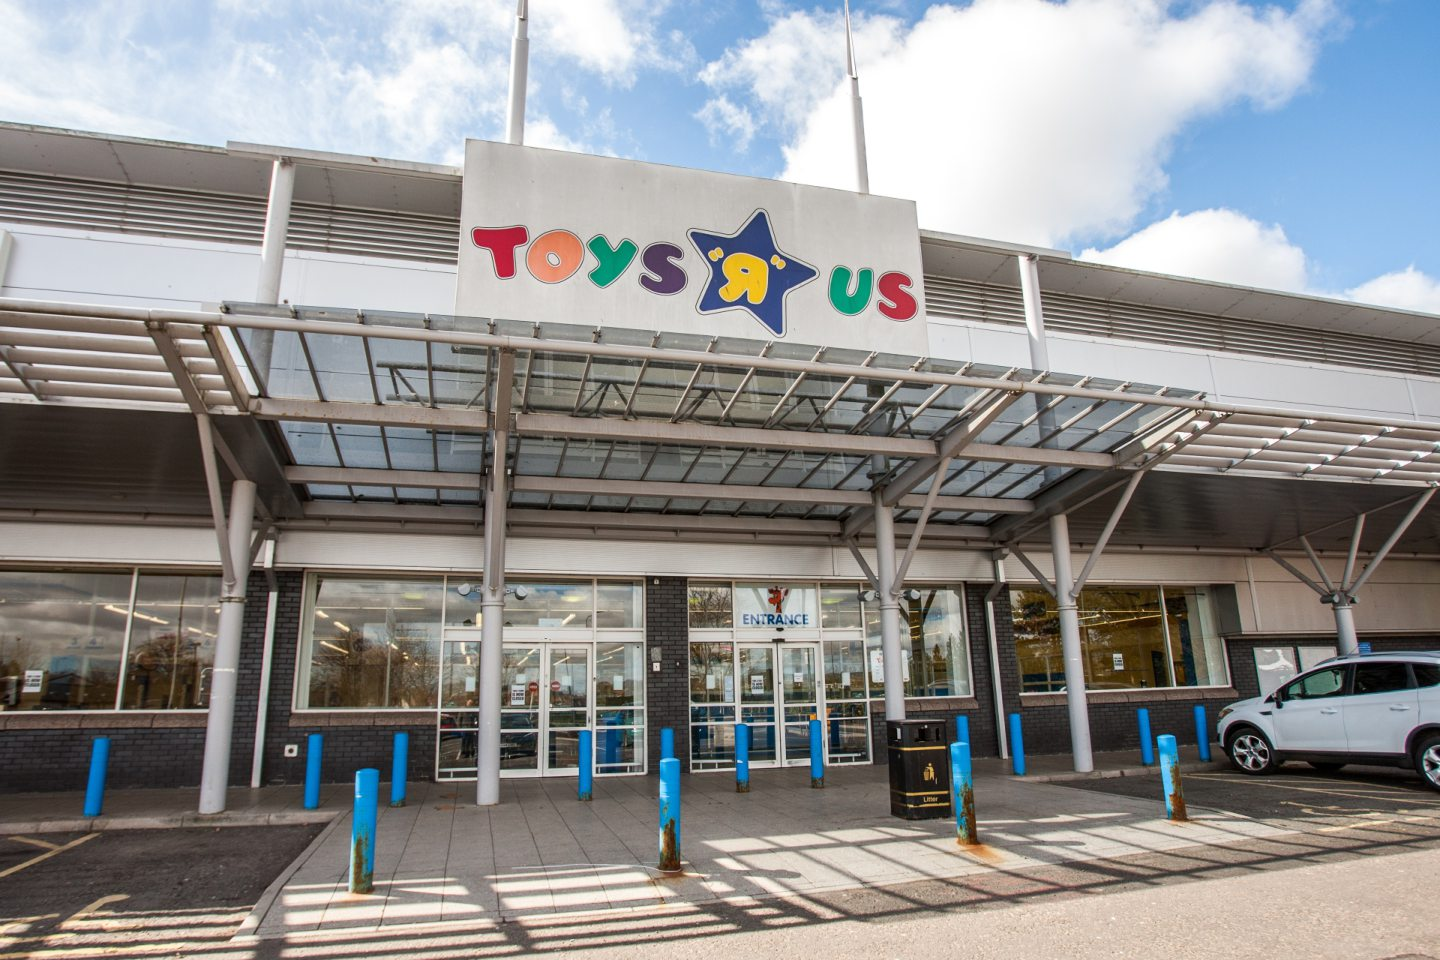 The former Toys R Us on the Kingsway will be transformed into a family activity centre